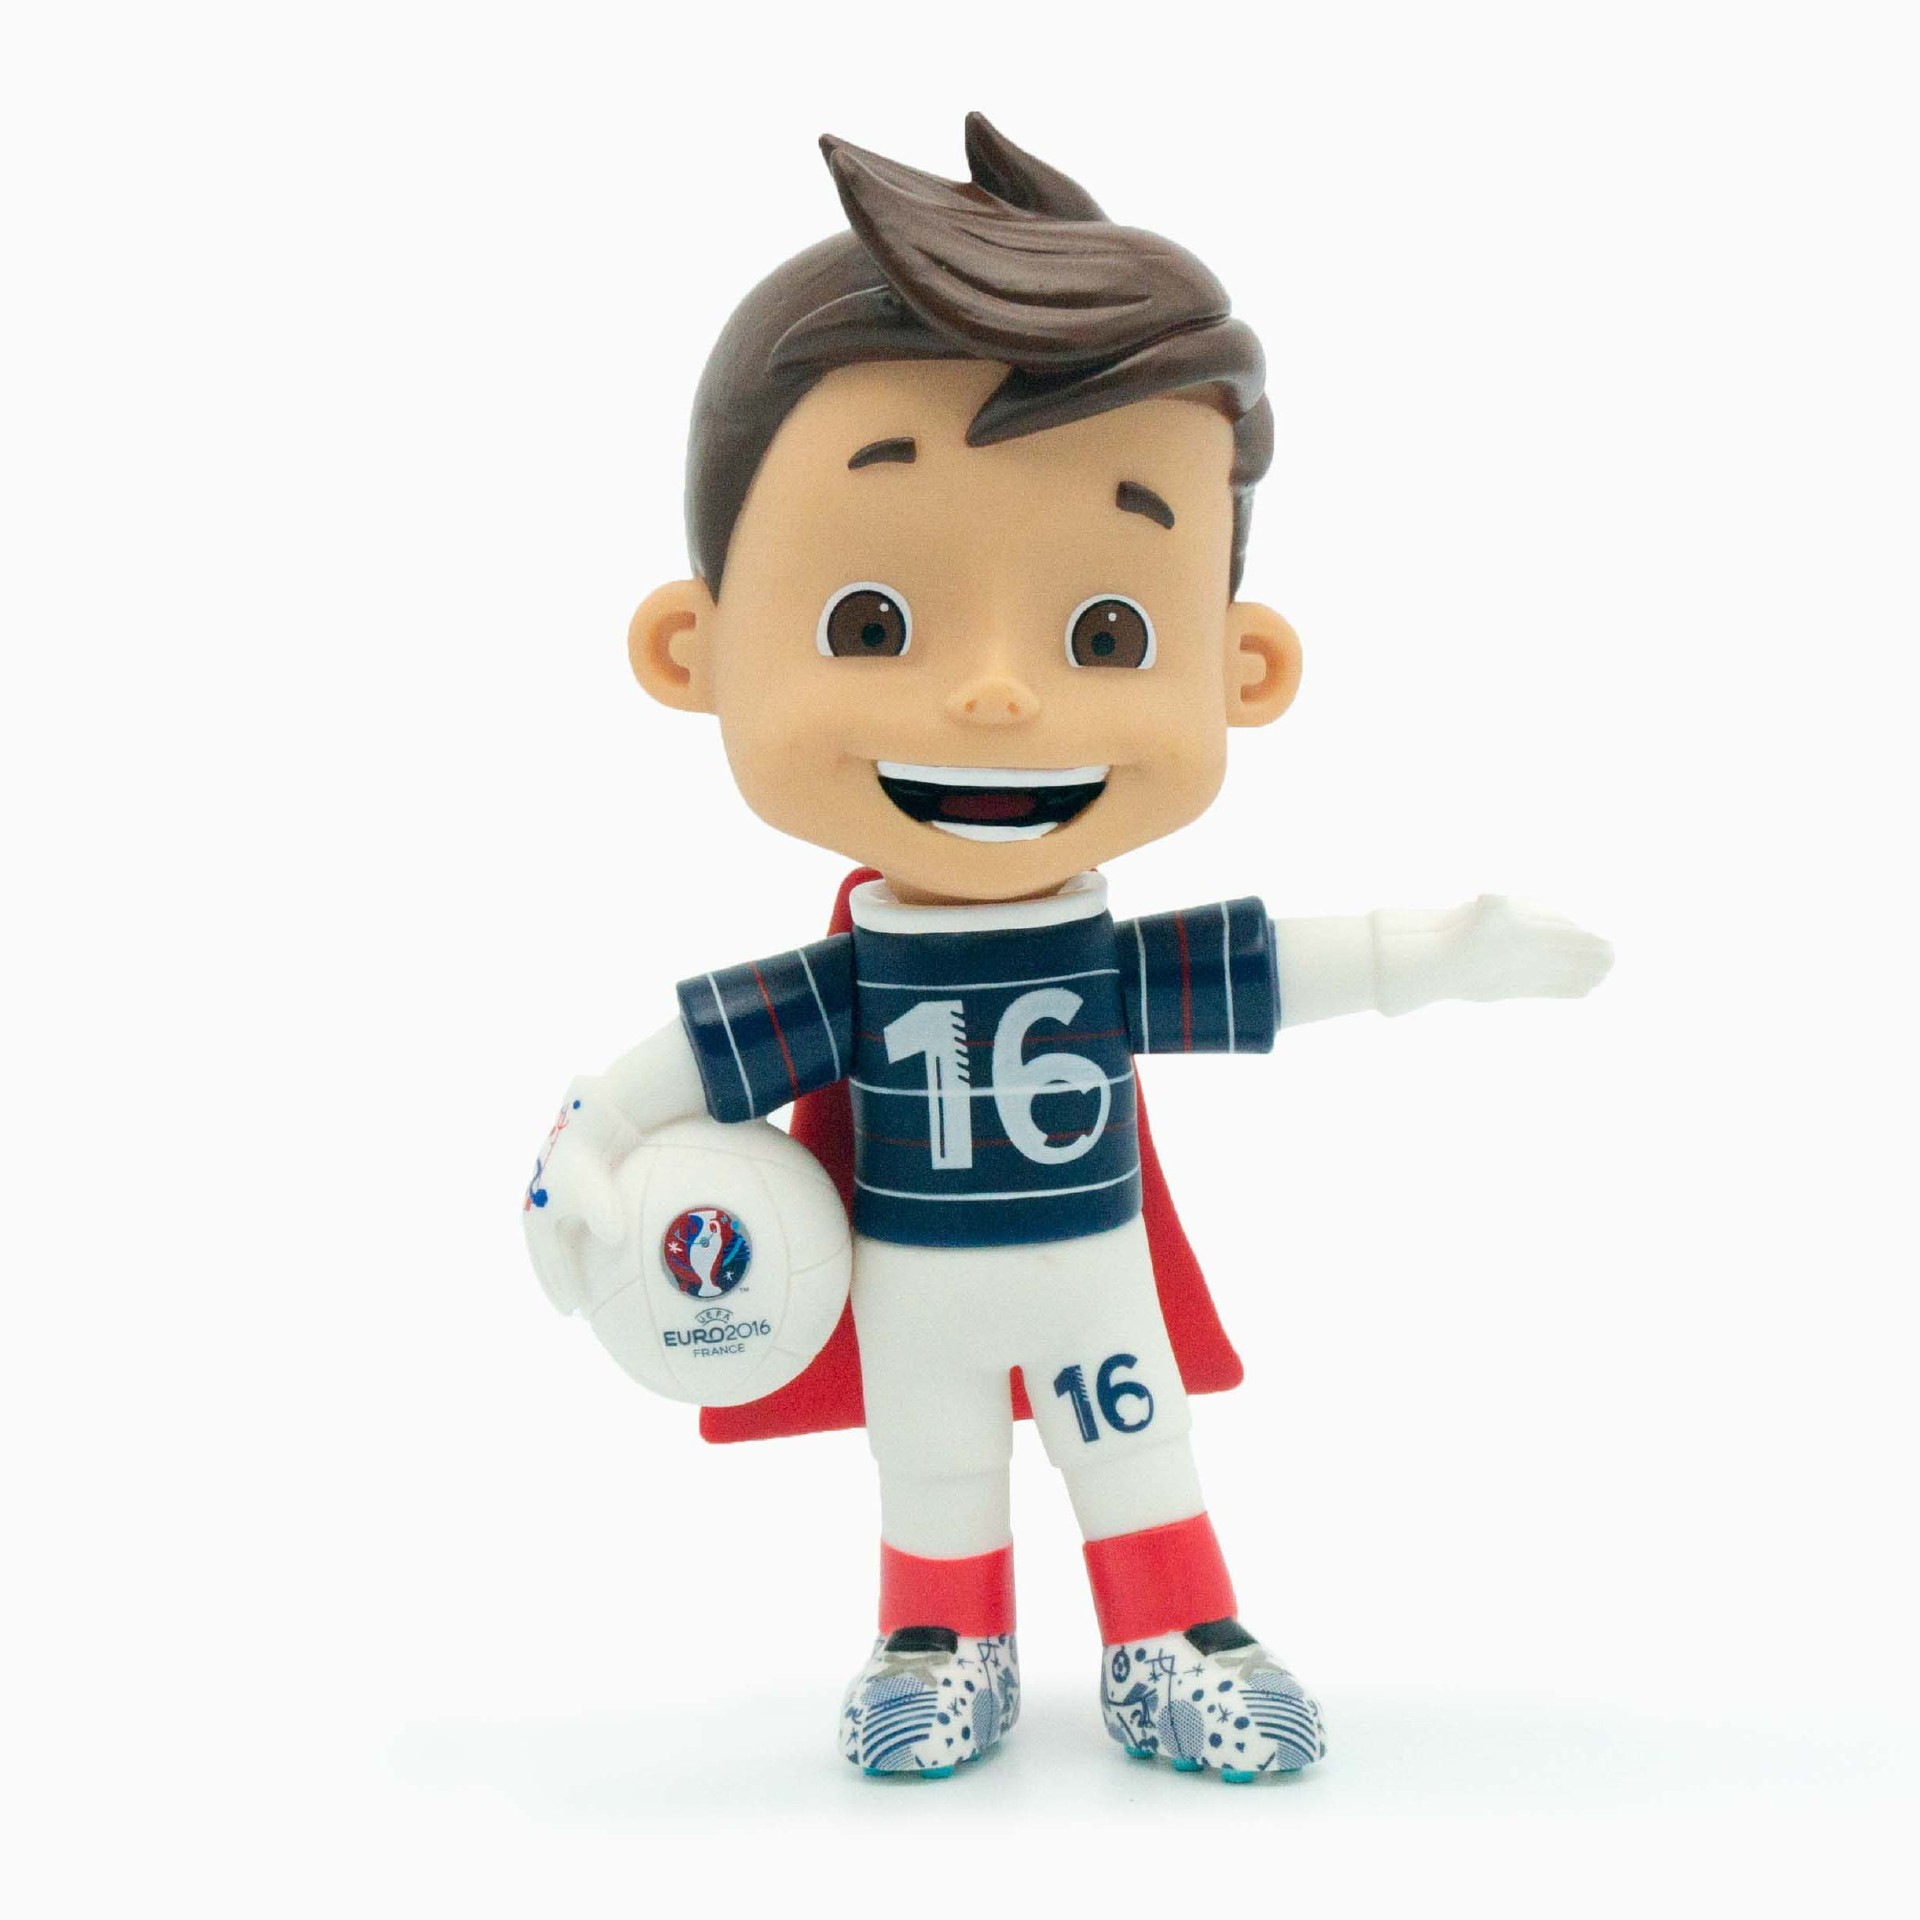 Soccer Player Mascot Action Figure